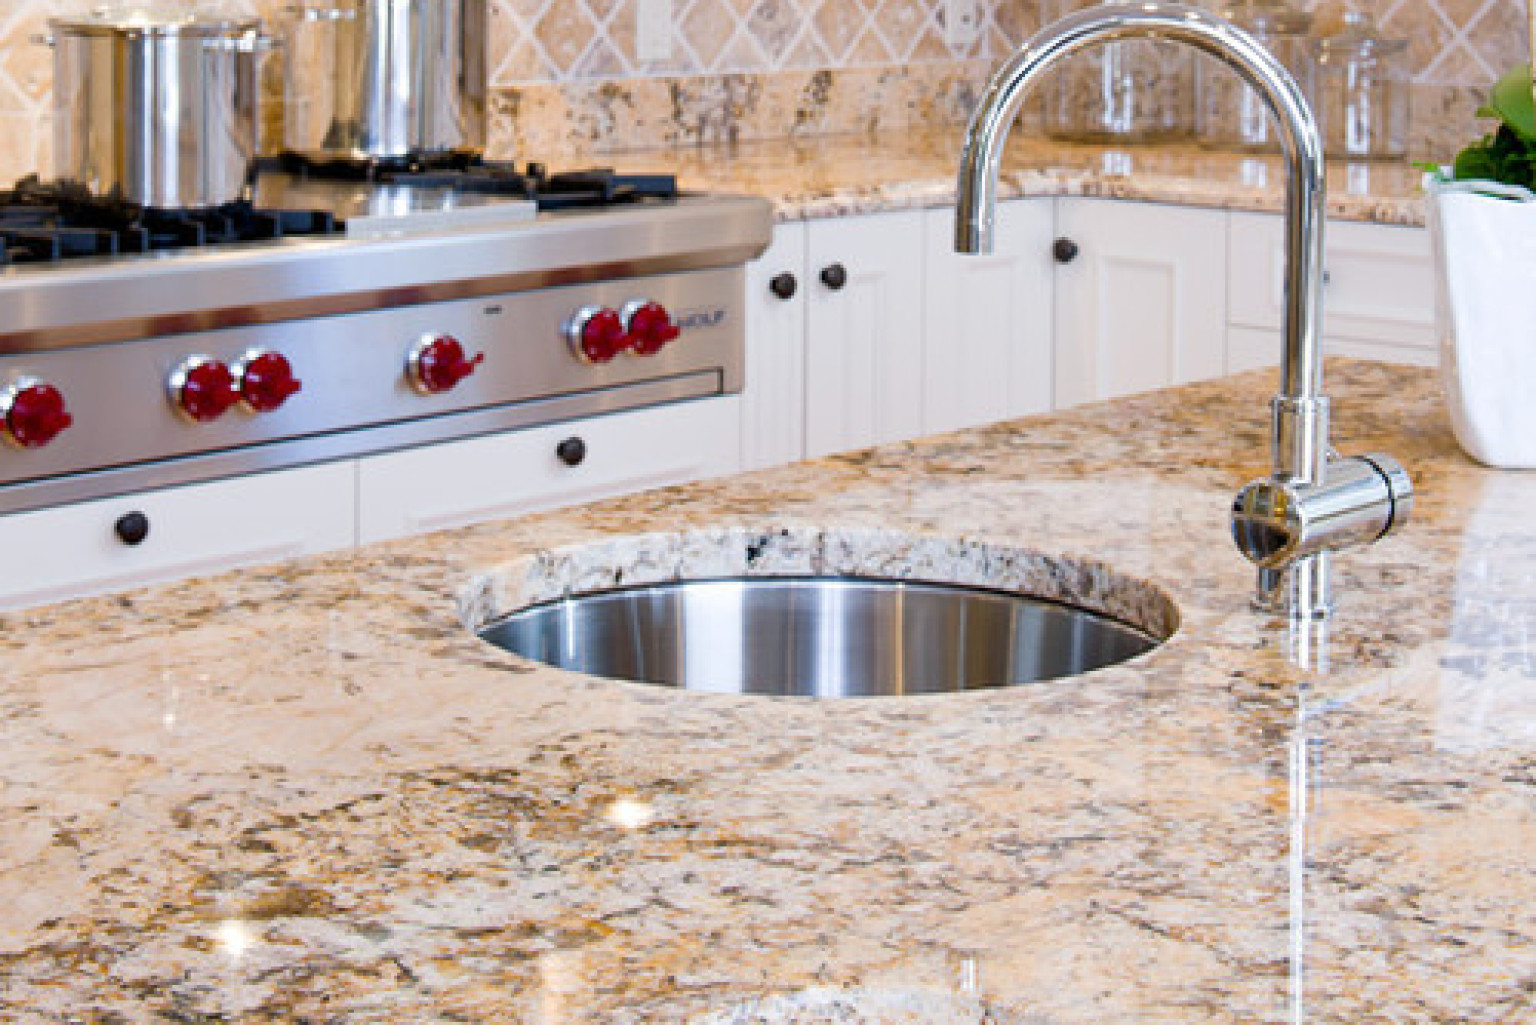 Captivating Kitchen Countertops Buying Guide: The Ins And Outs Of The Best Options On  The Market (PHOTOS) | HuffPost